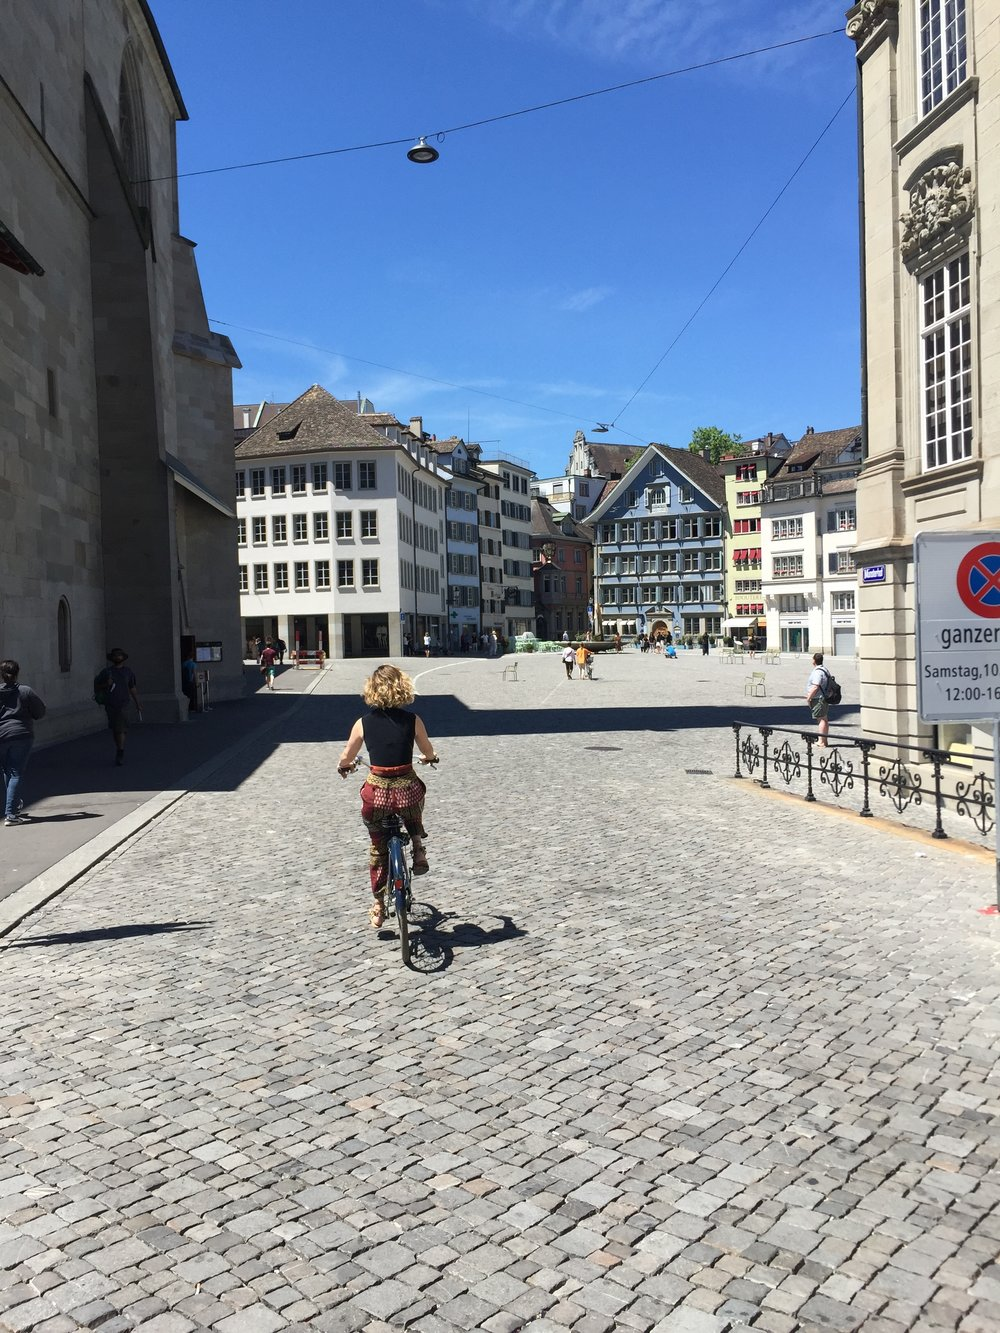 Leslie bike riding in Zurich, Switzerland—the best way to see a city!